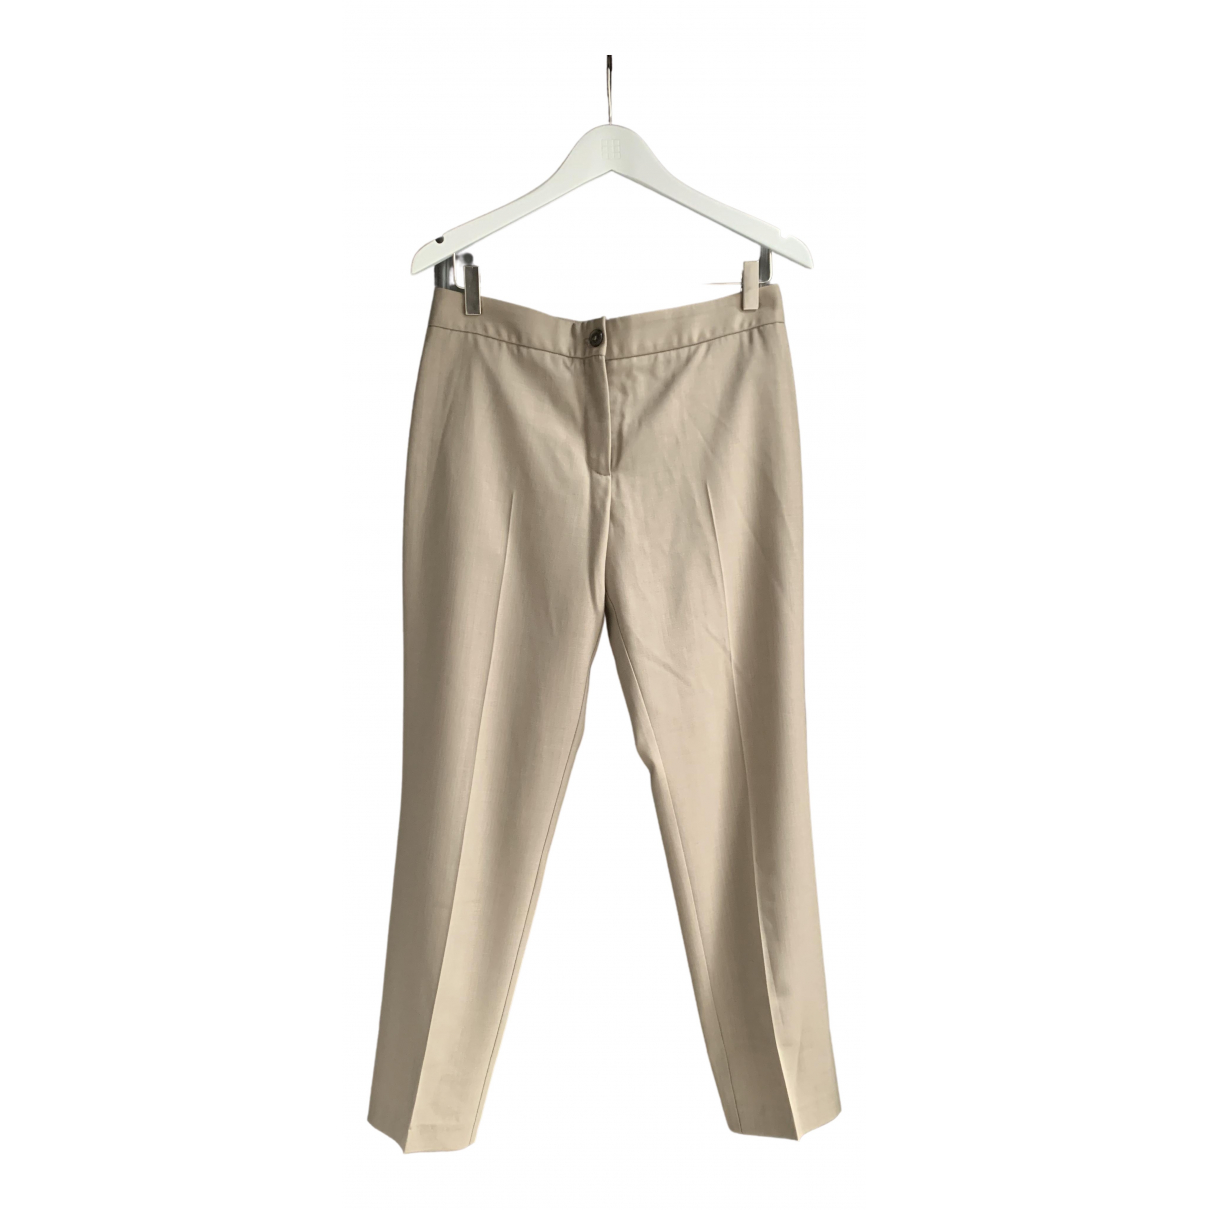 Maison Martin Margiela \N Beige Wool Trousers for Women 42 IT